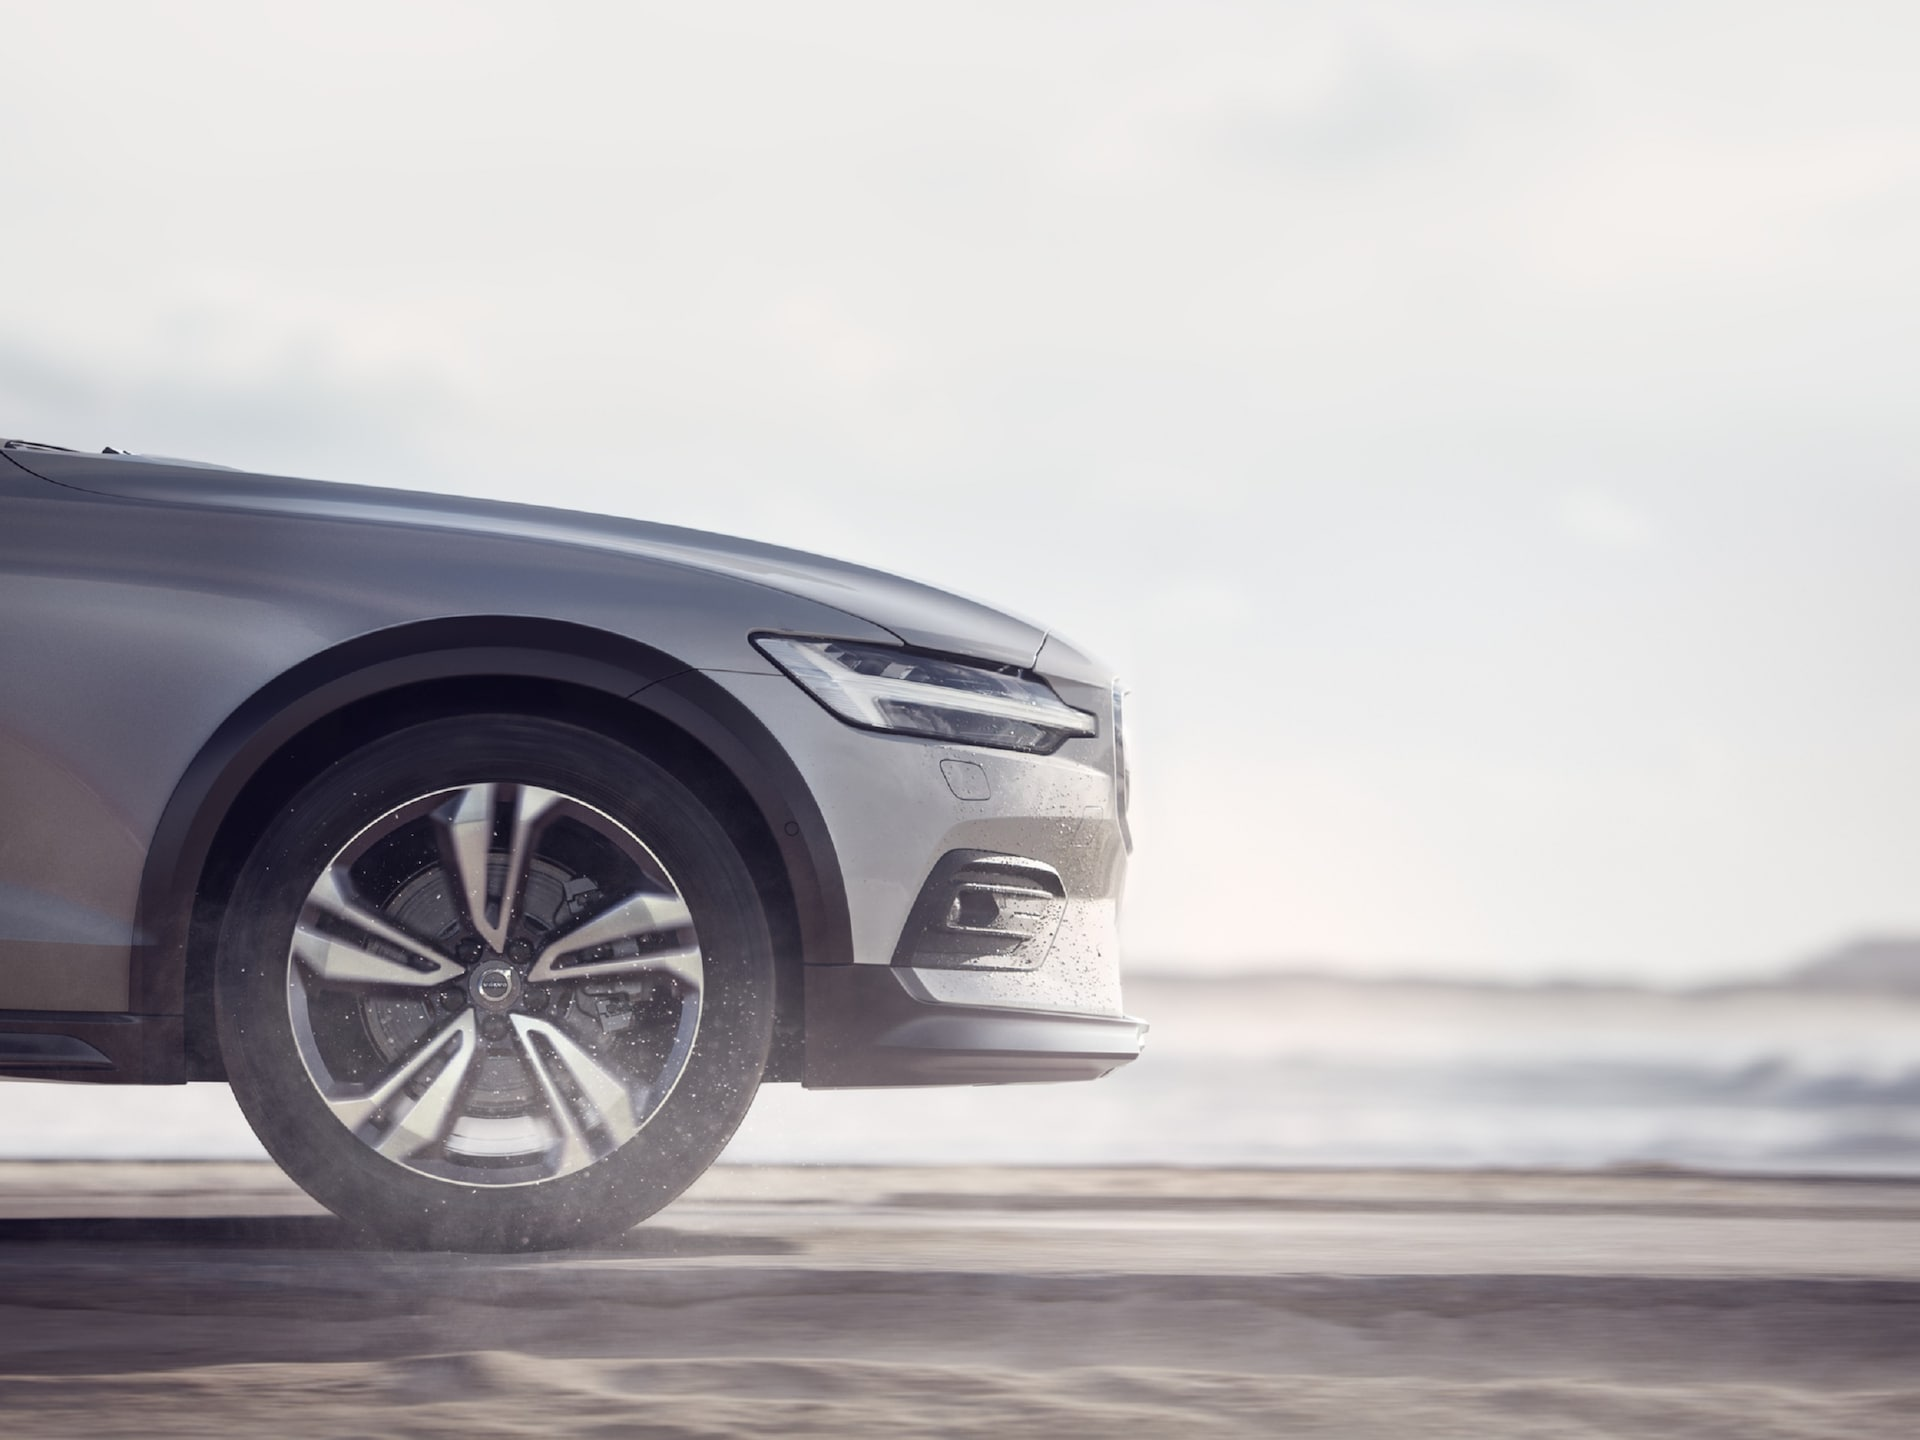 The V60 Cross Country